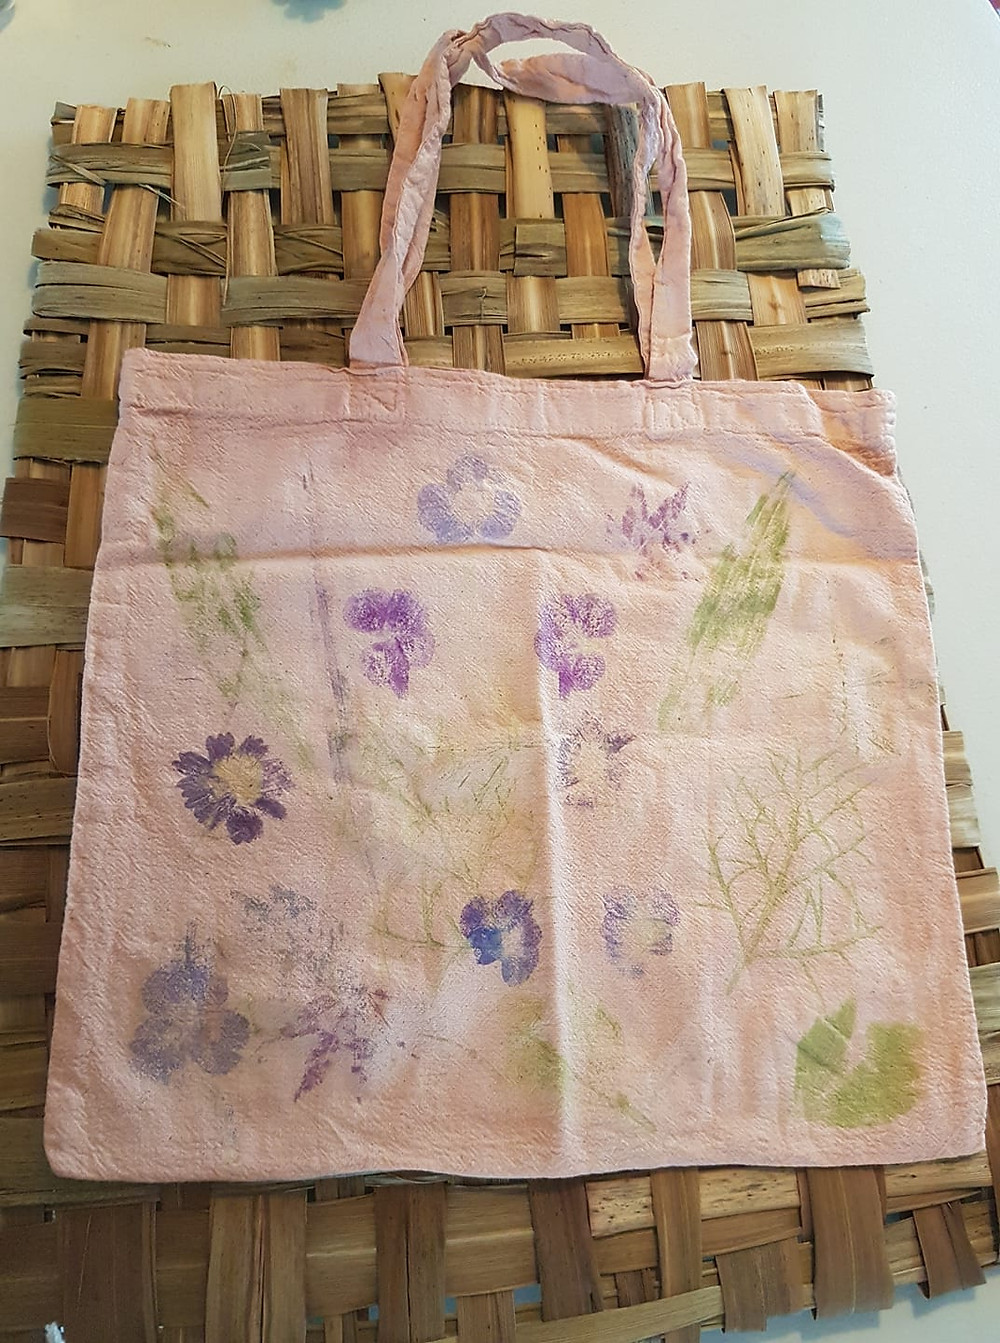 Cottage garden plants beaten into fabric. Cosmos, Geranium, Plantain leaves. Bag dyed with madder